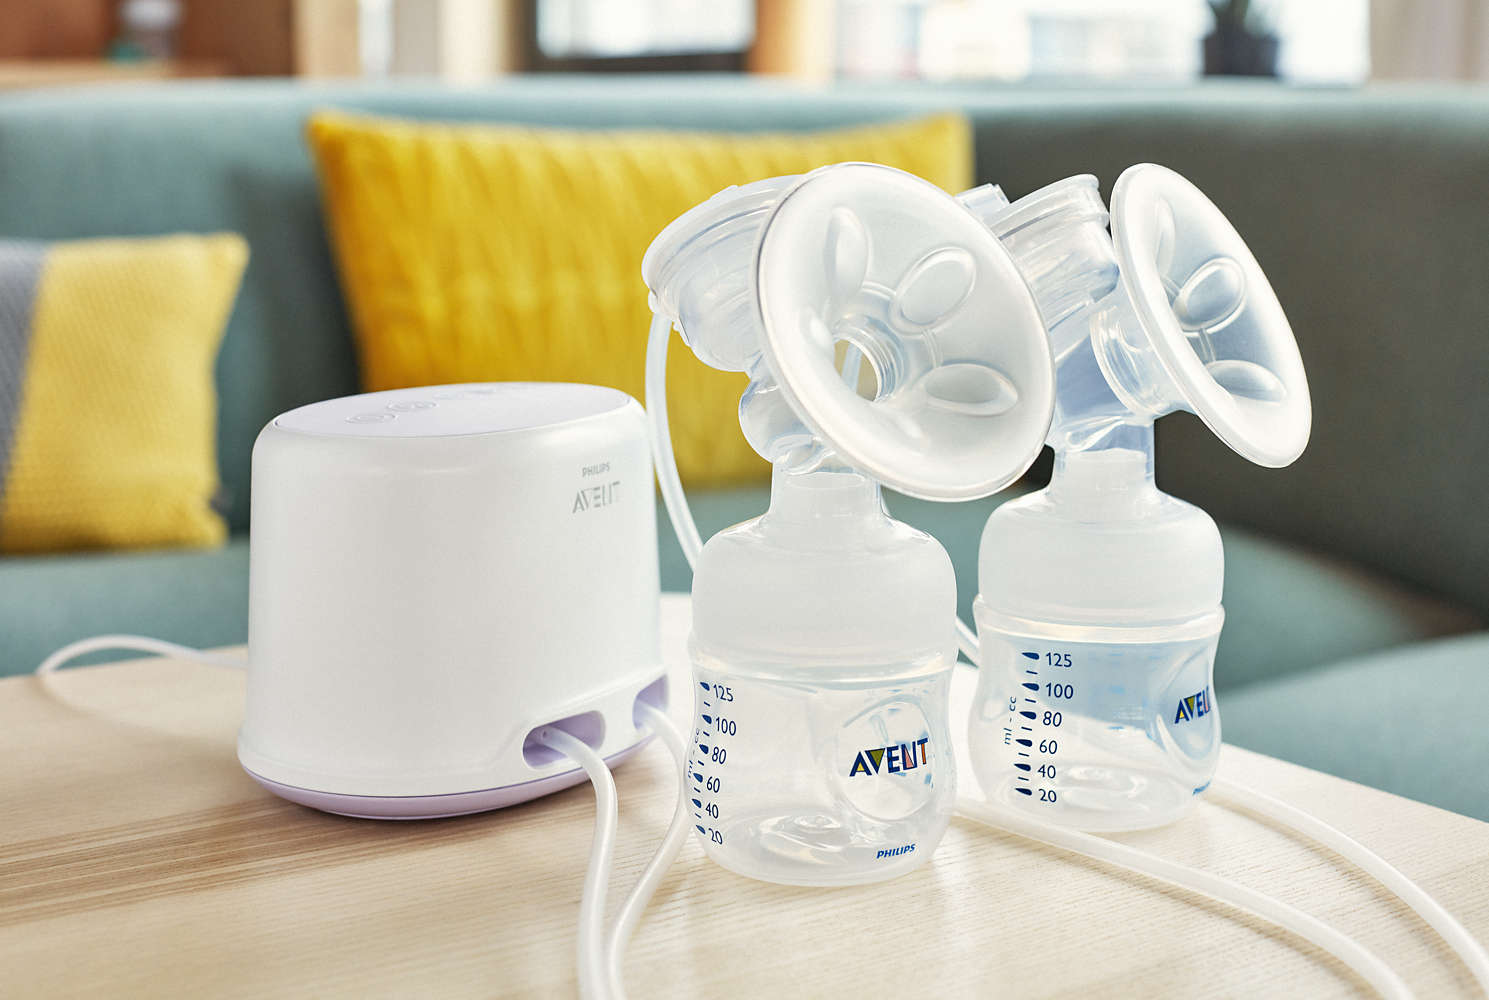 Philips Avent Best Breast Pump